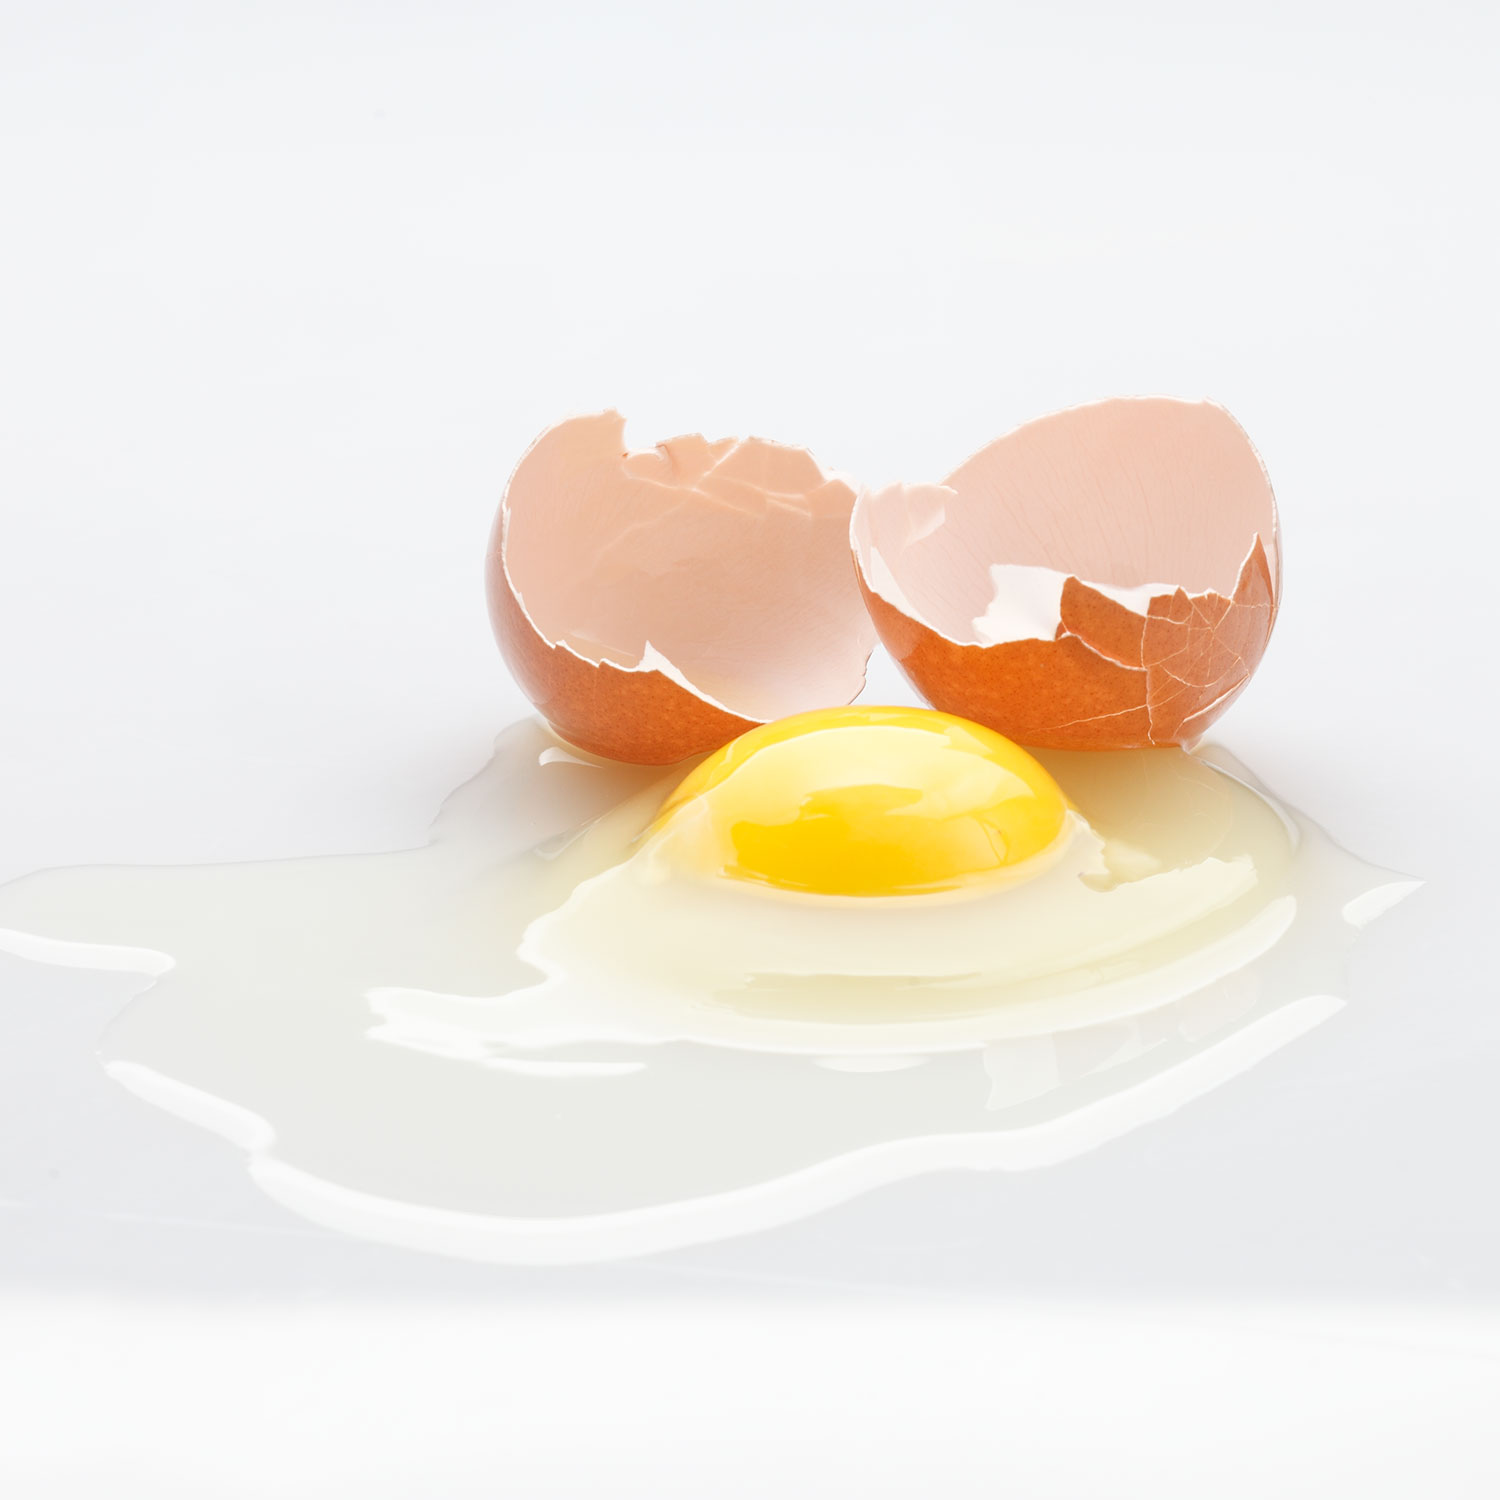 cracked raw egg on a white background